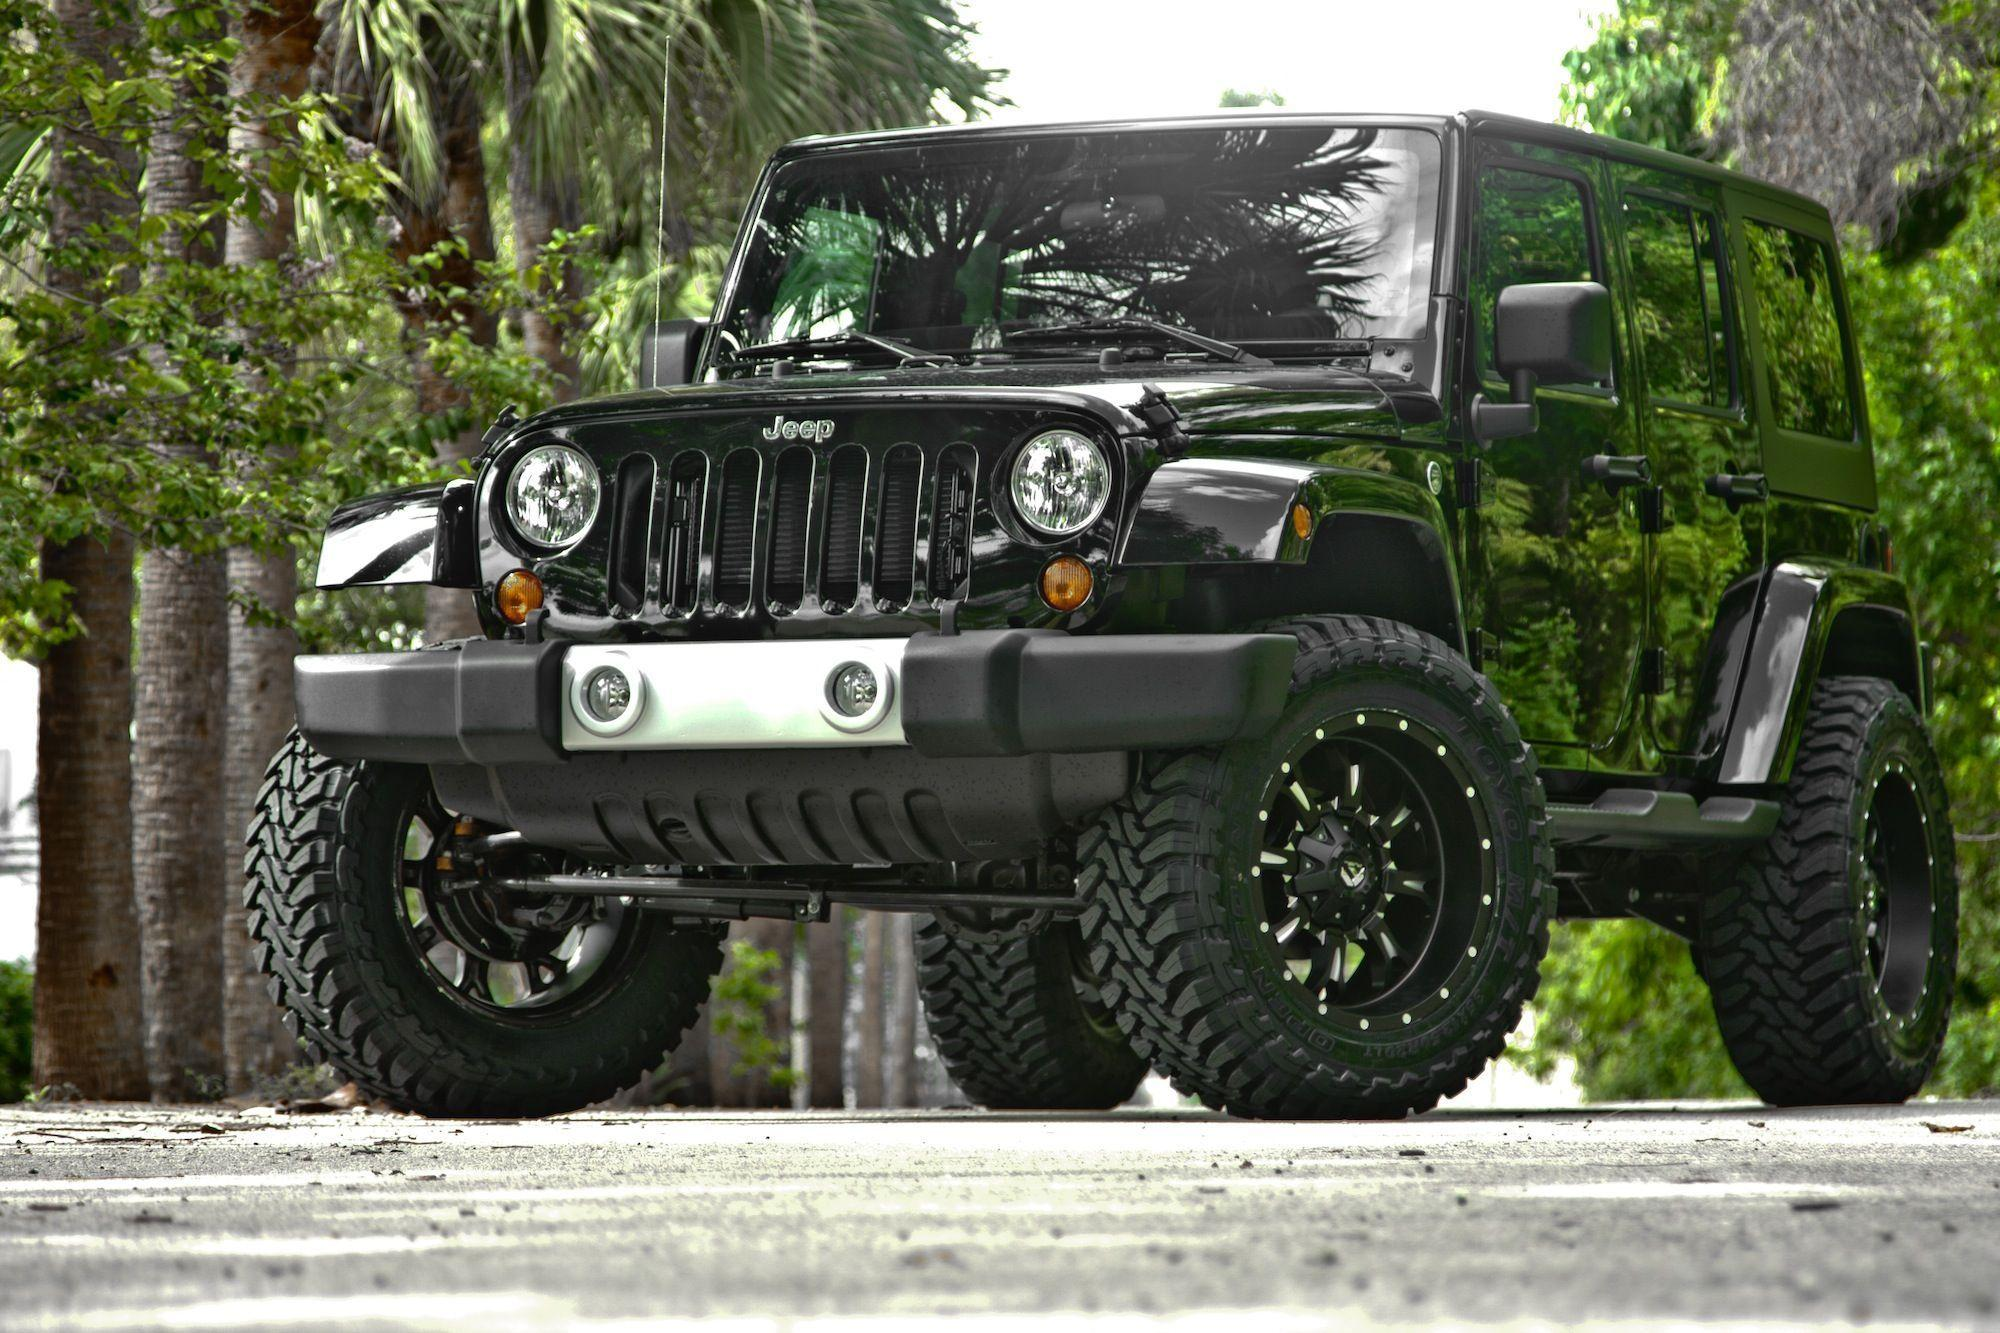 Black Rims For Jeep >> Jeep Wrangler Wallpapers - Wallpaper Cave